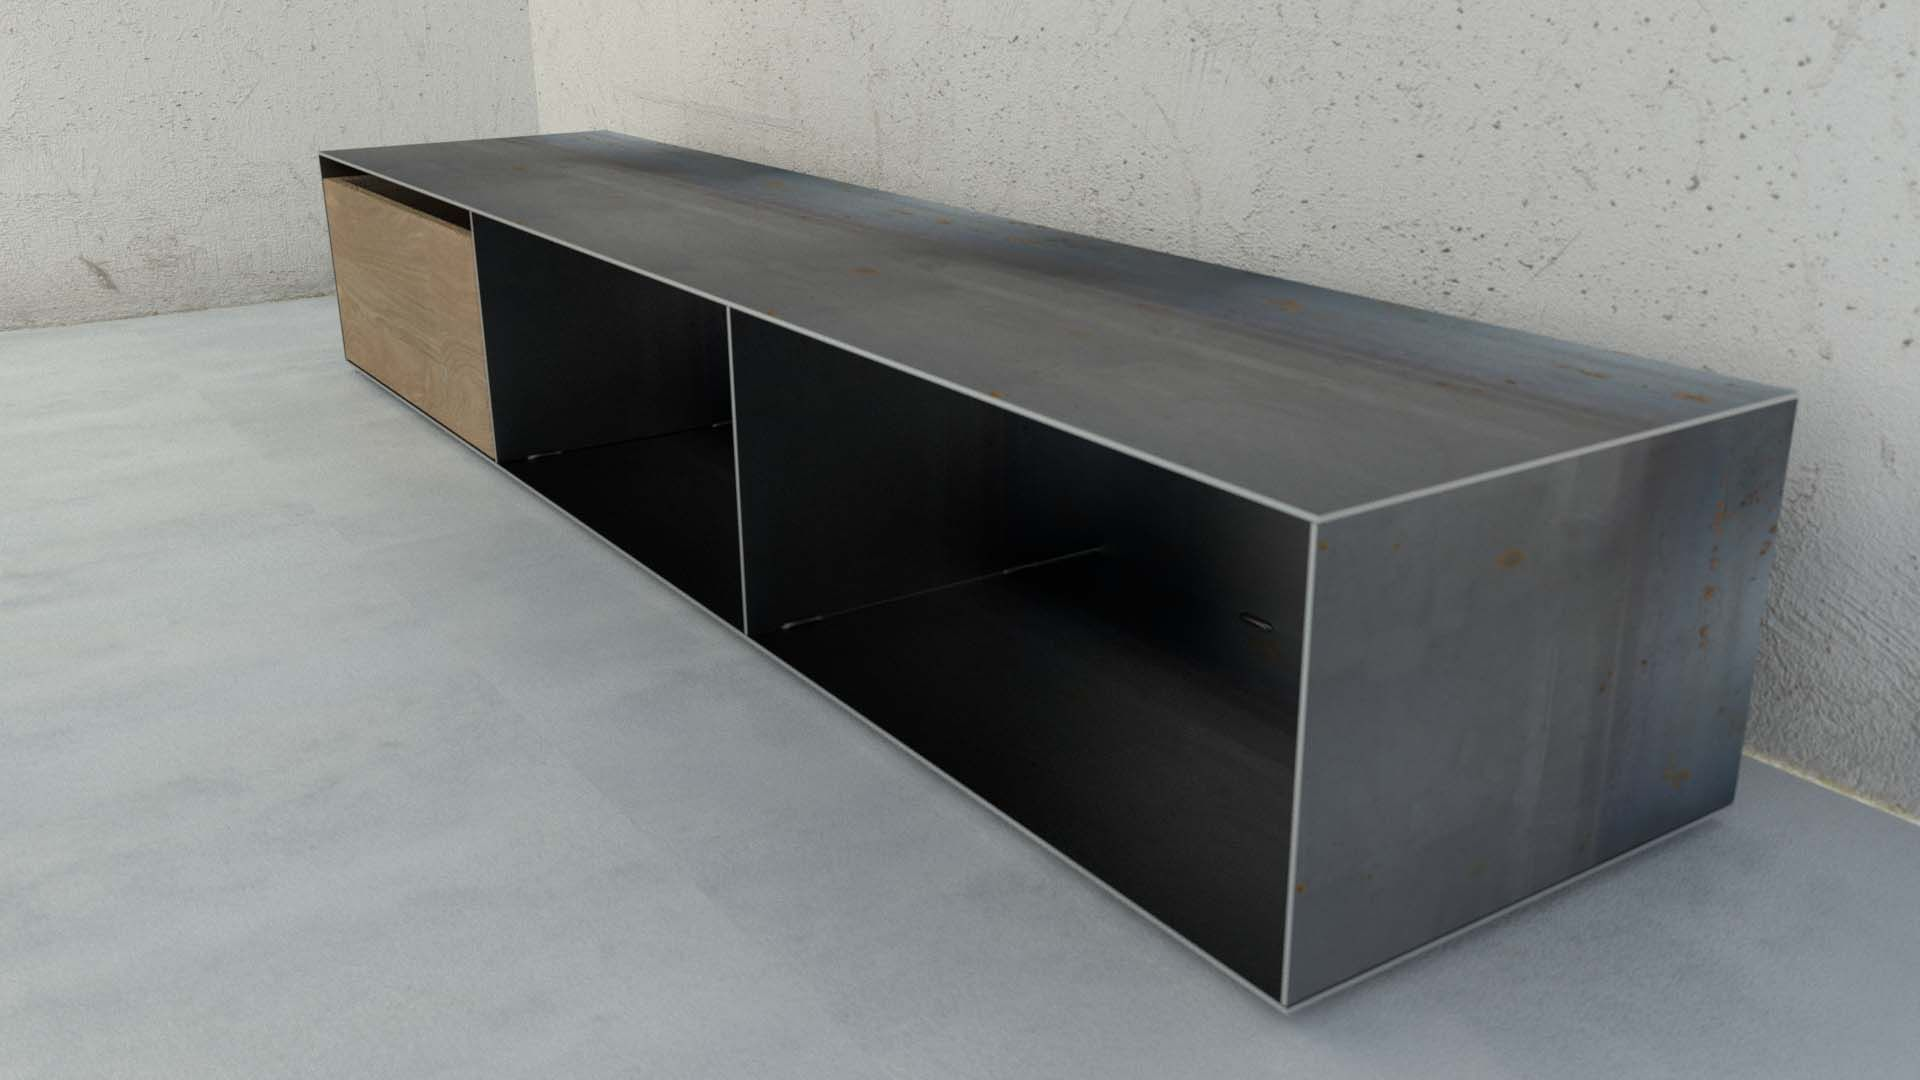 designmetallmoebel brennholz sideboard kaminholz. Black Bedroom Furniture Sets. Home Design Ideas